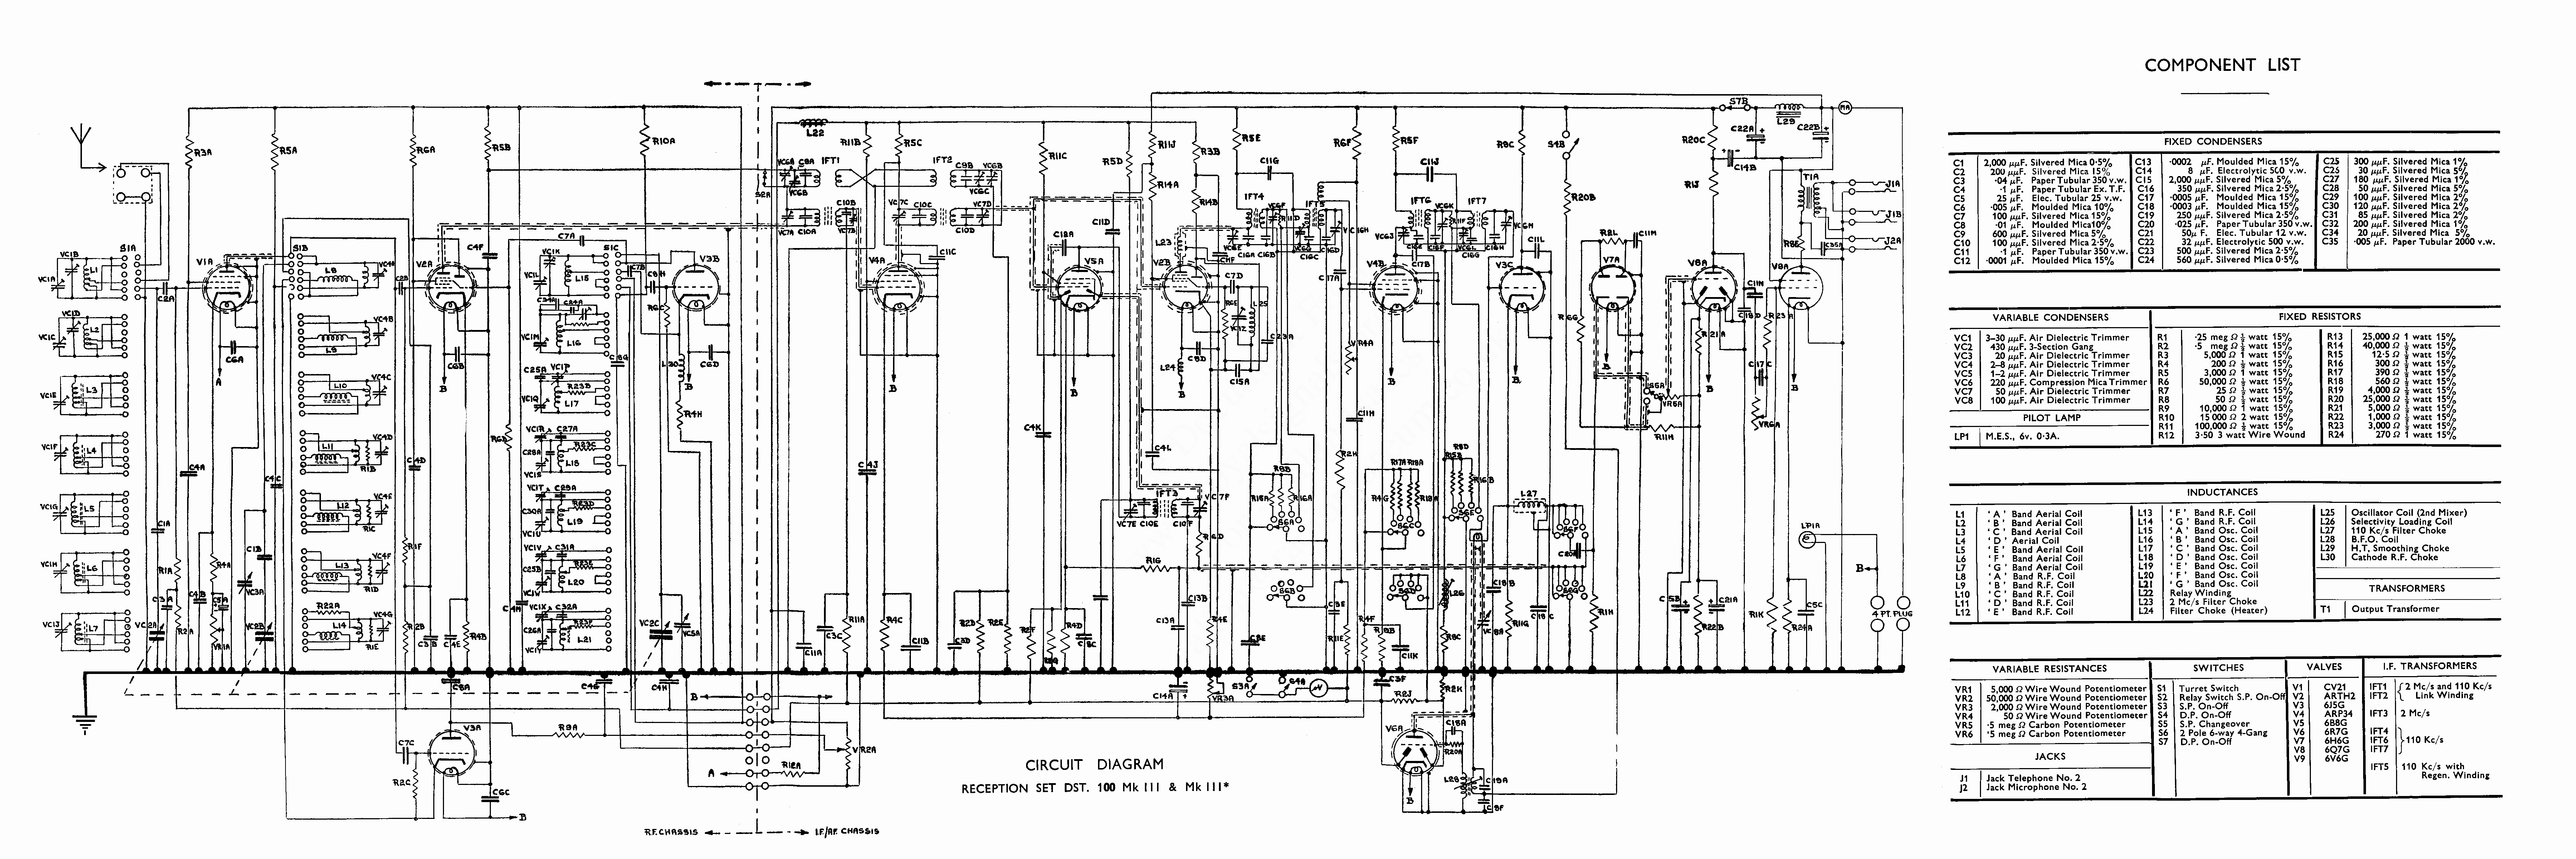 Dst100 Circuit Diagram With Labels Click The Label To See Large Parts List